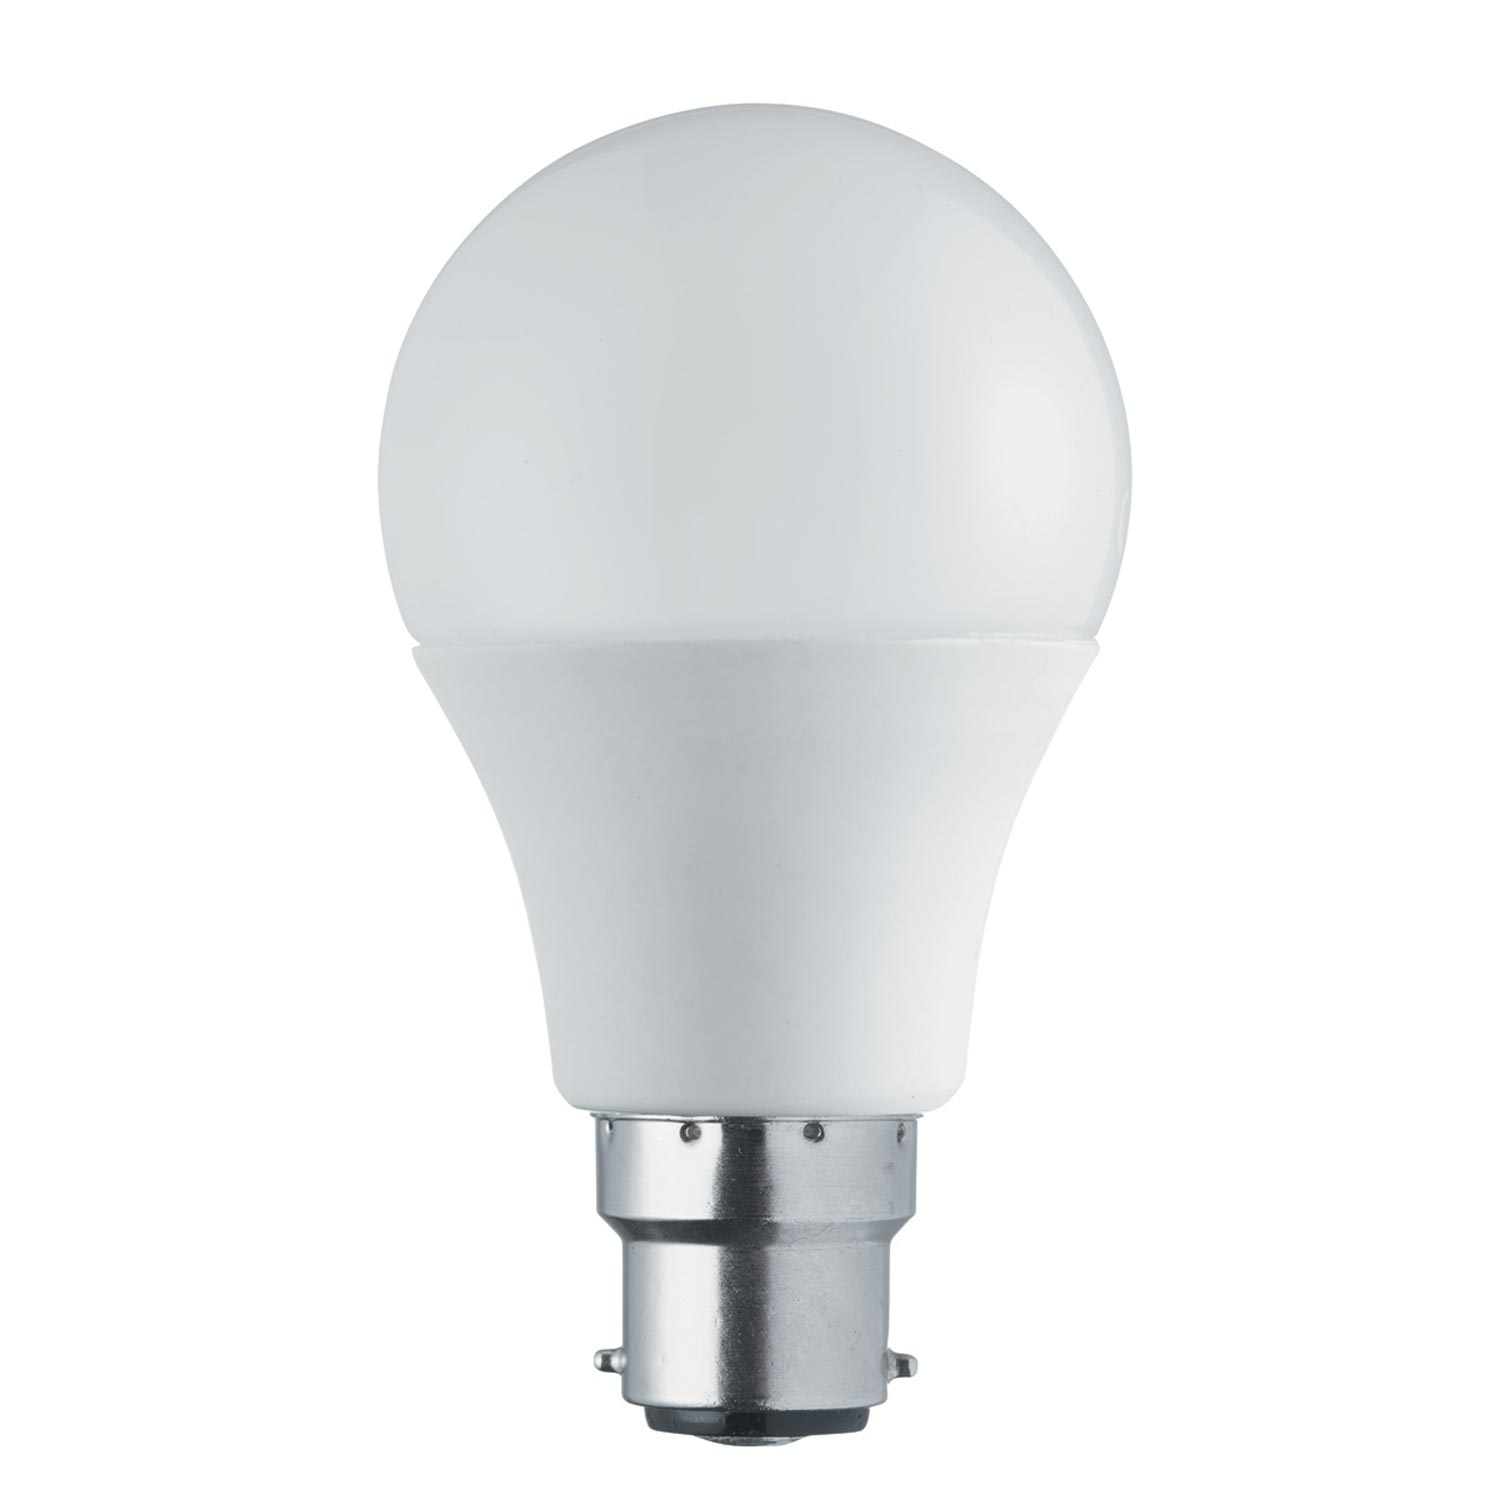 10w Led B22 Bulb 800 Lumens, Warm White